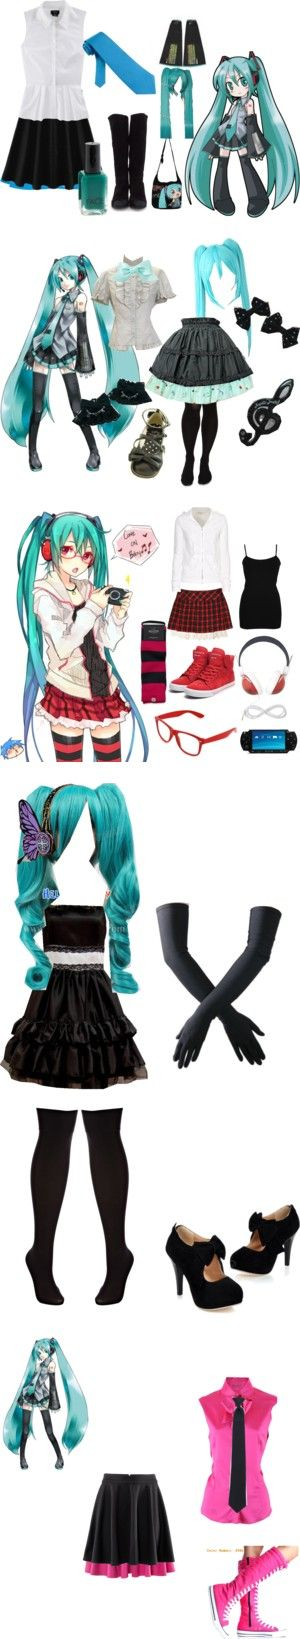 """""""Miku Hatsune Cosplay Casually"""" by kkatterrinna ❤ liked on Polyvore"""